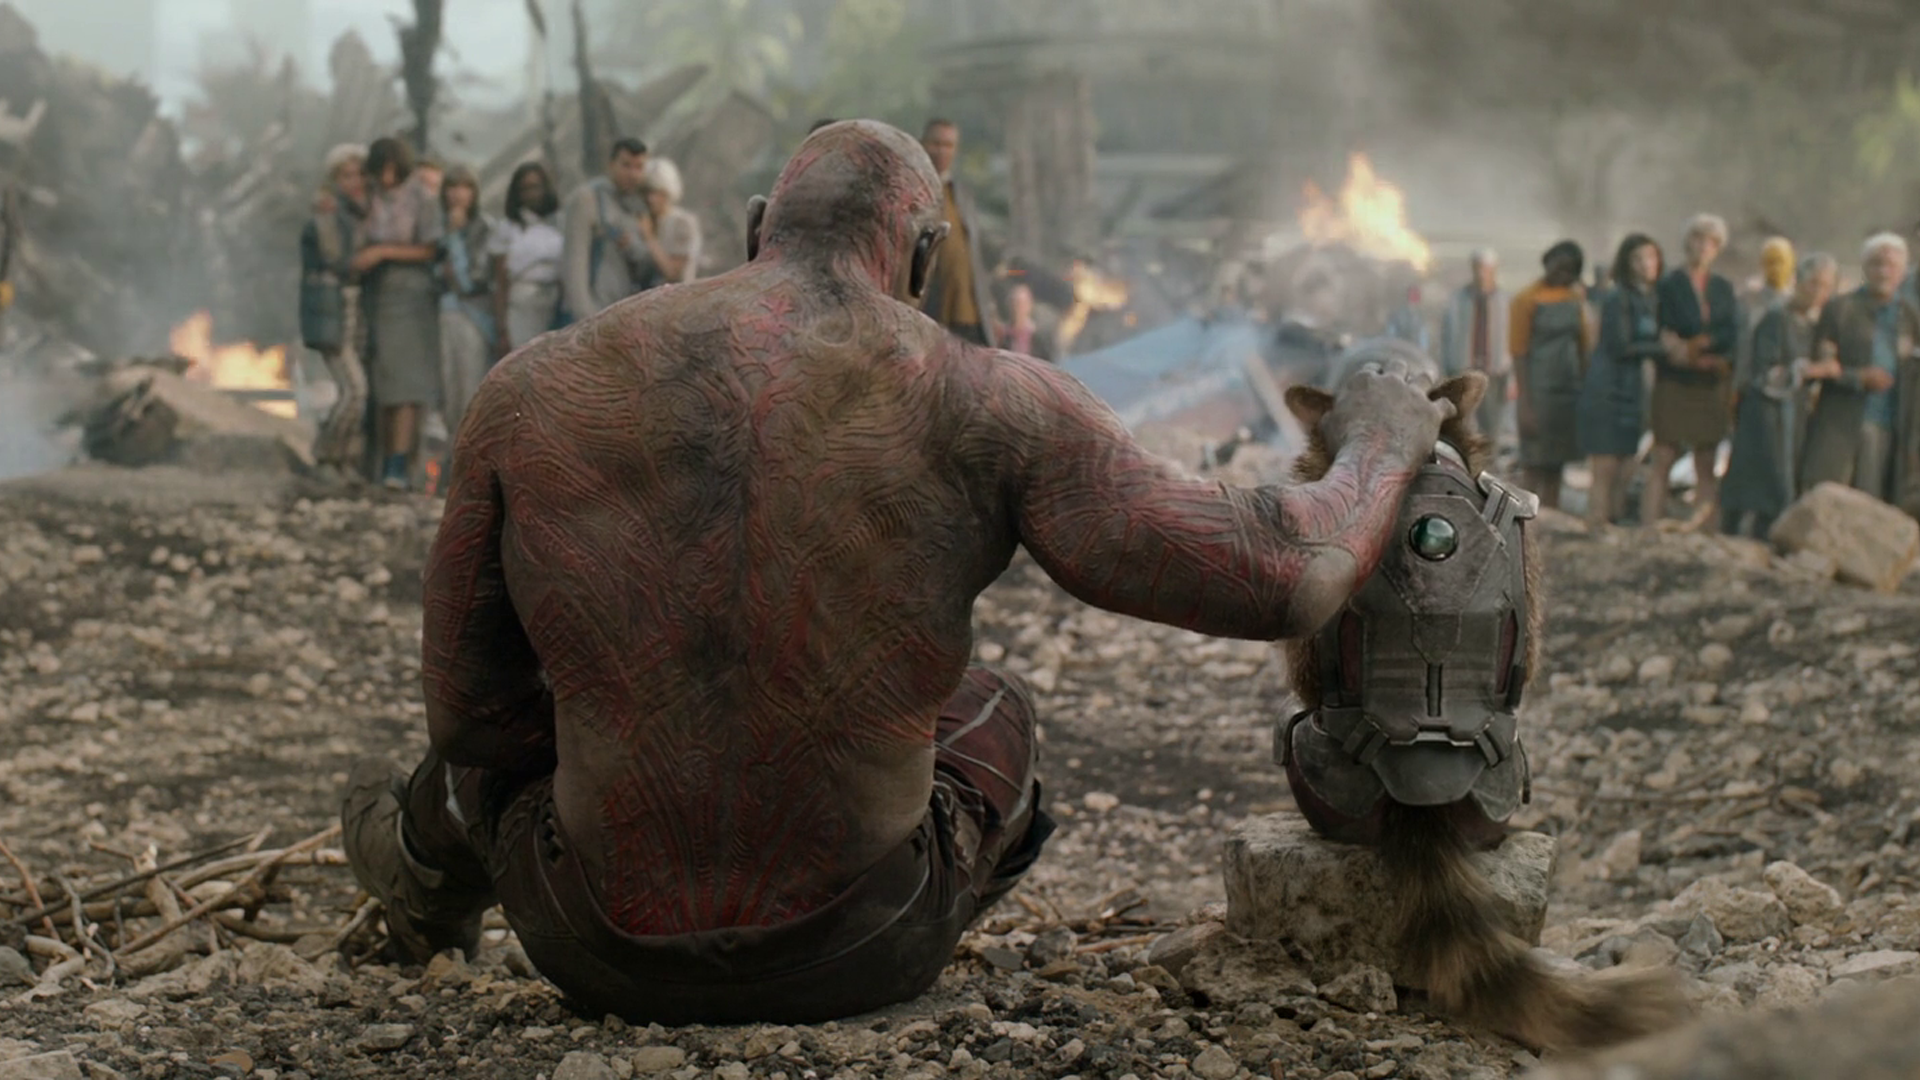 Movie - Guardians of the Galaxy  Dave Bautista Rocket Raccoon Drax The Destroyer Wallpaper